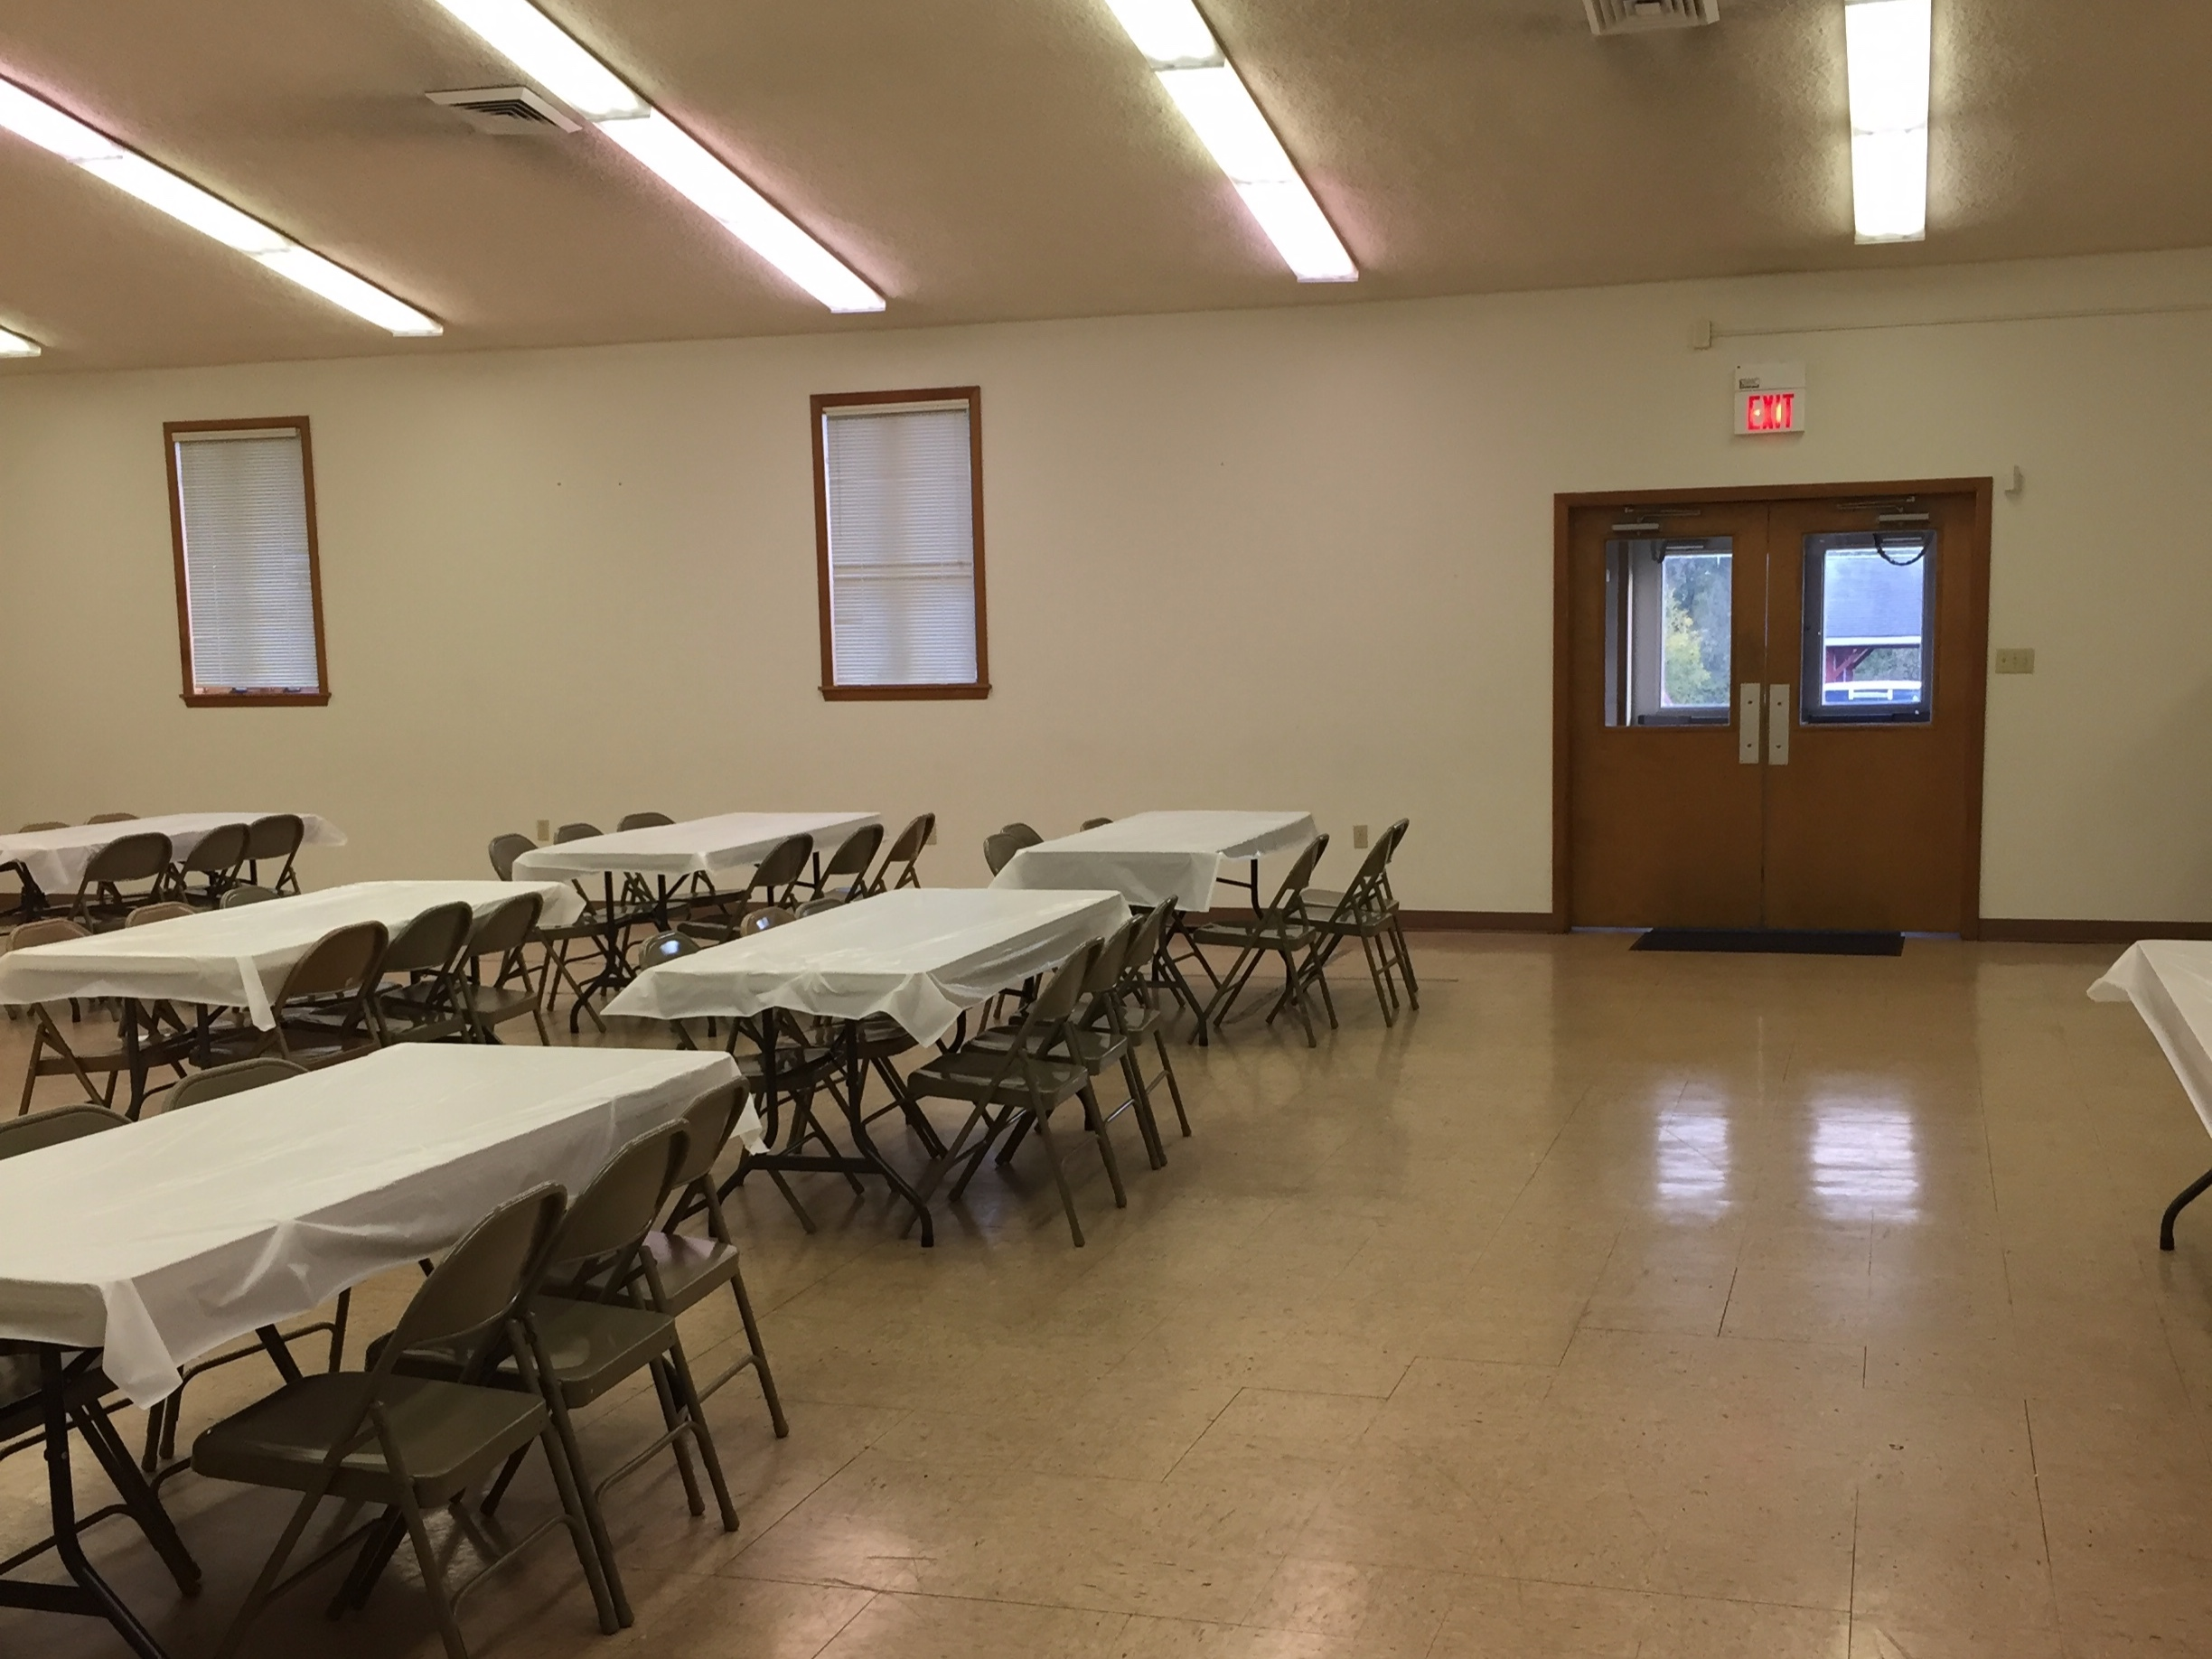 Milley Fellowship Hall - We rent our fellowship hall for events, parties, and get-togethers. You can inquire about hall rental here.